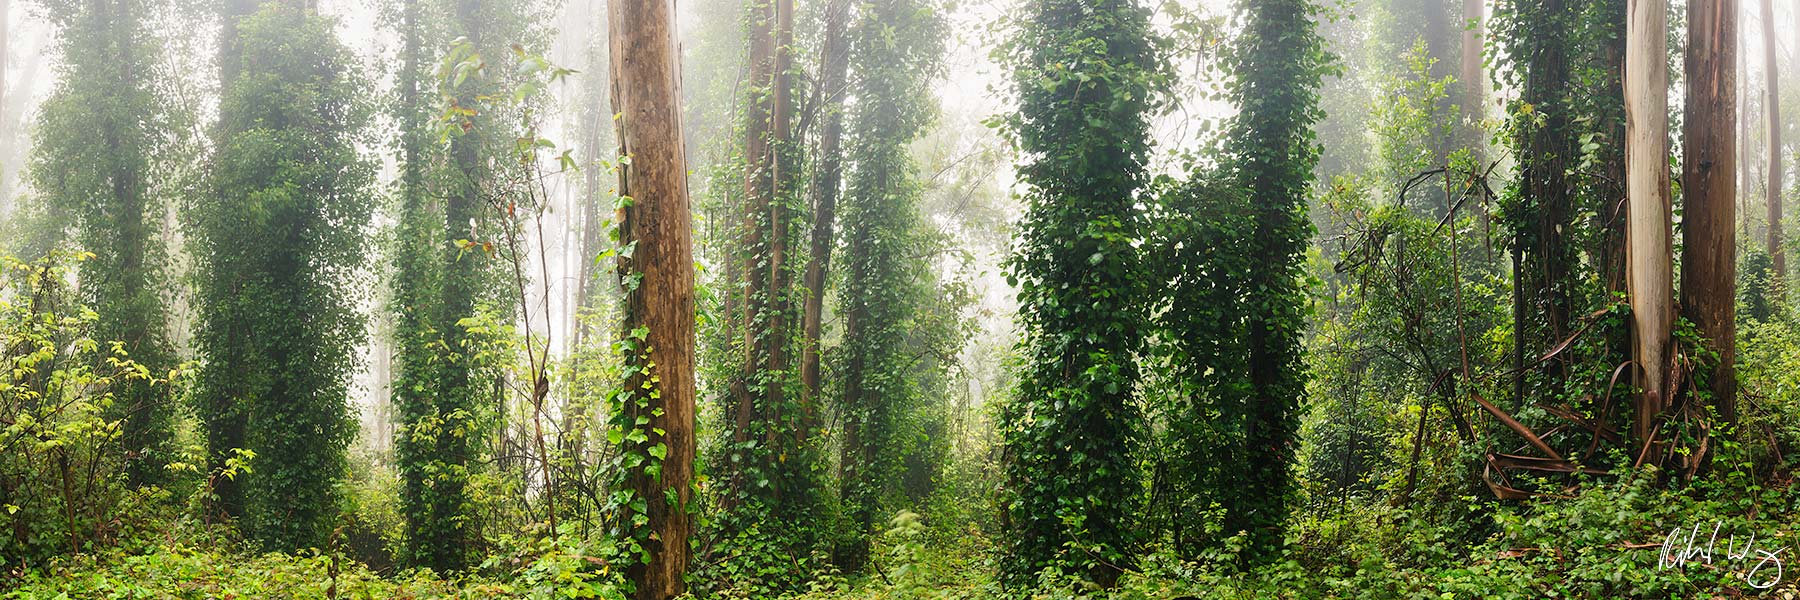 Foggy Eucalyptus Forest Panoramic, San Francisco, California, photo, photo